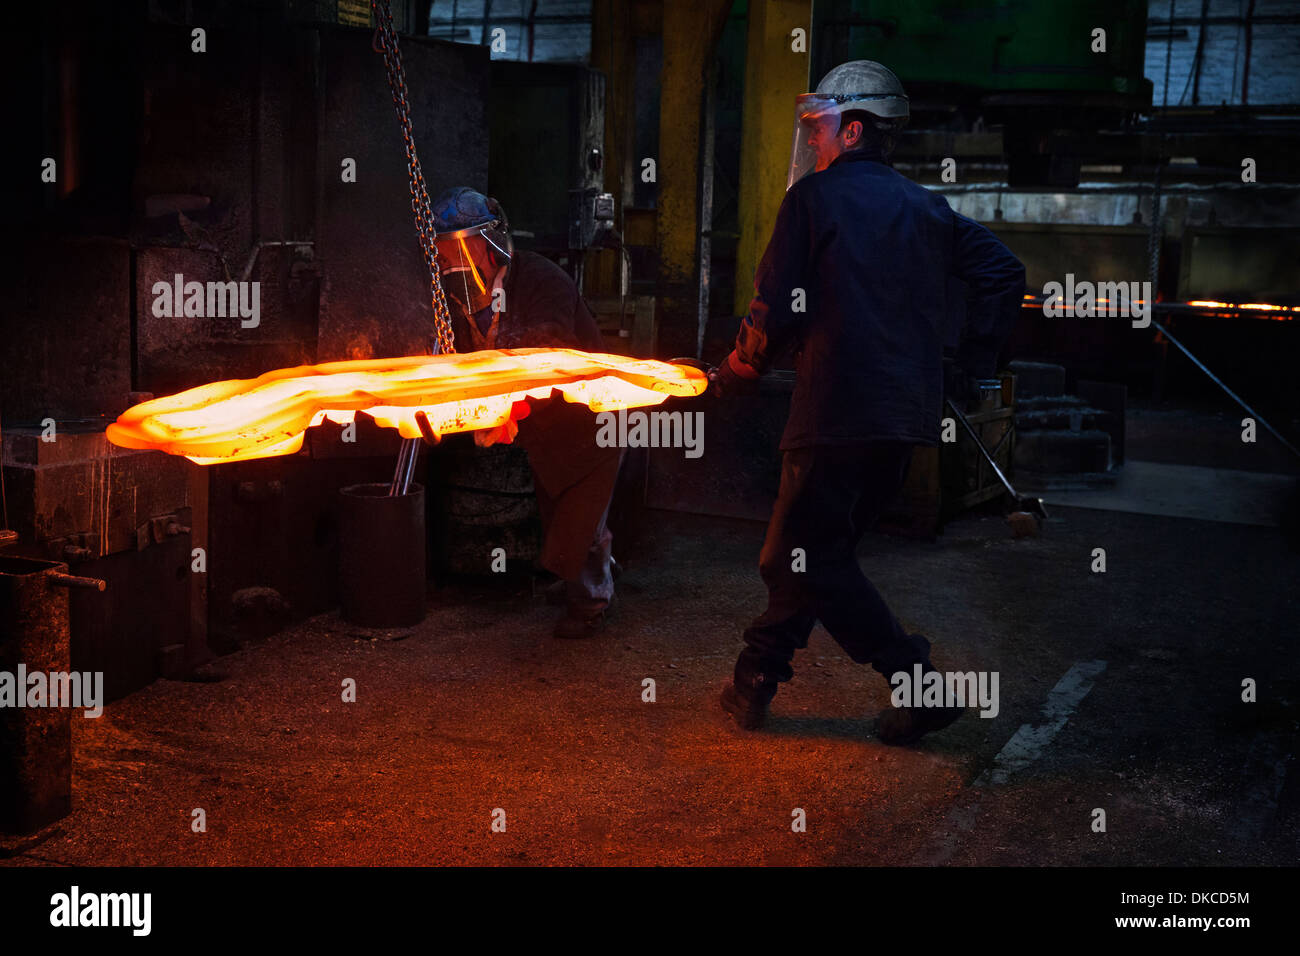 Flight bar having been forged in a 15 MT counterblow hammer, is moved to clipping press to clip off excess 'flash' - Stock Image